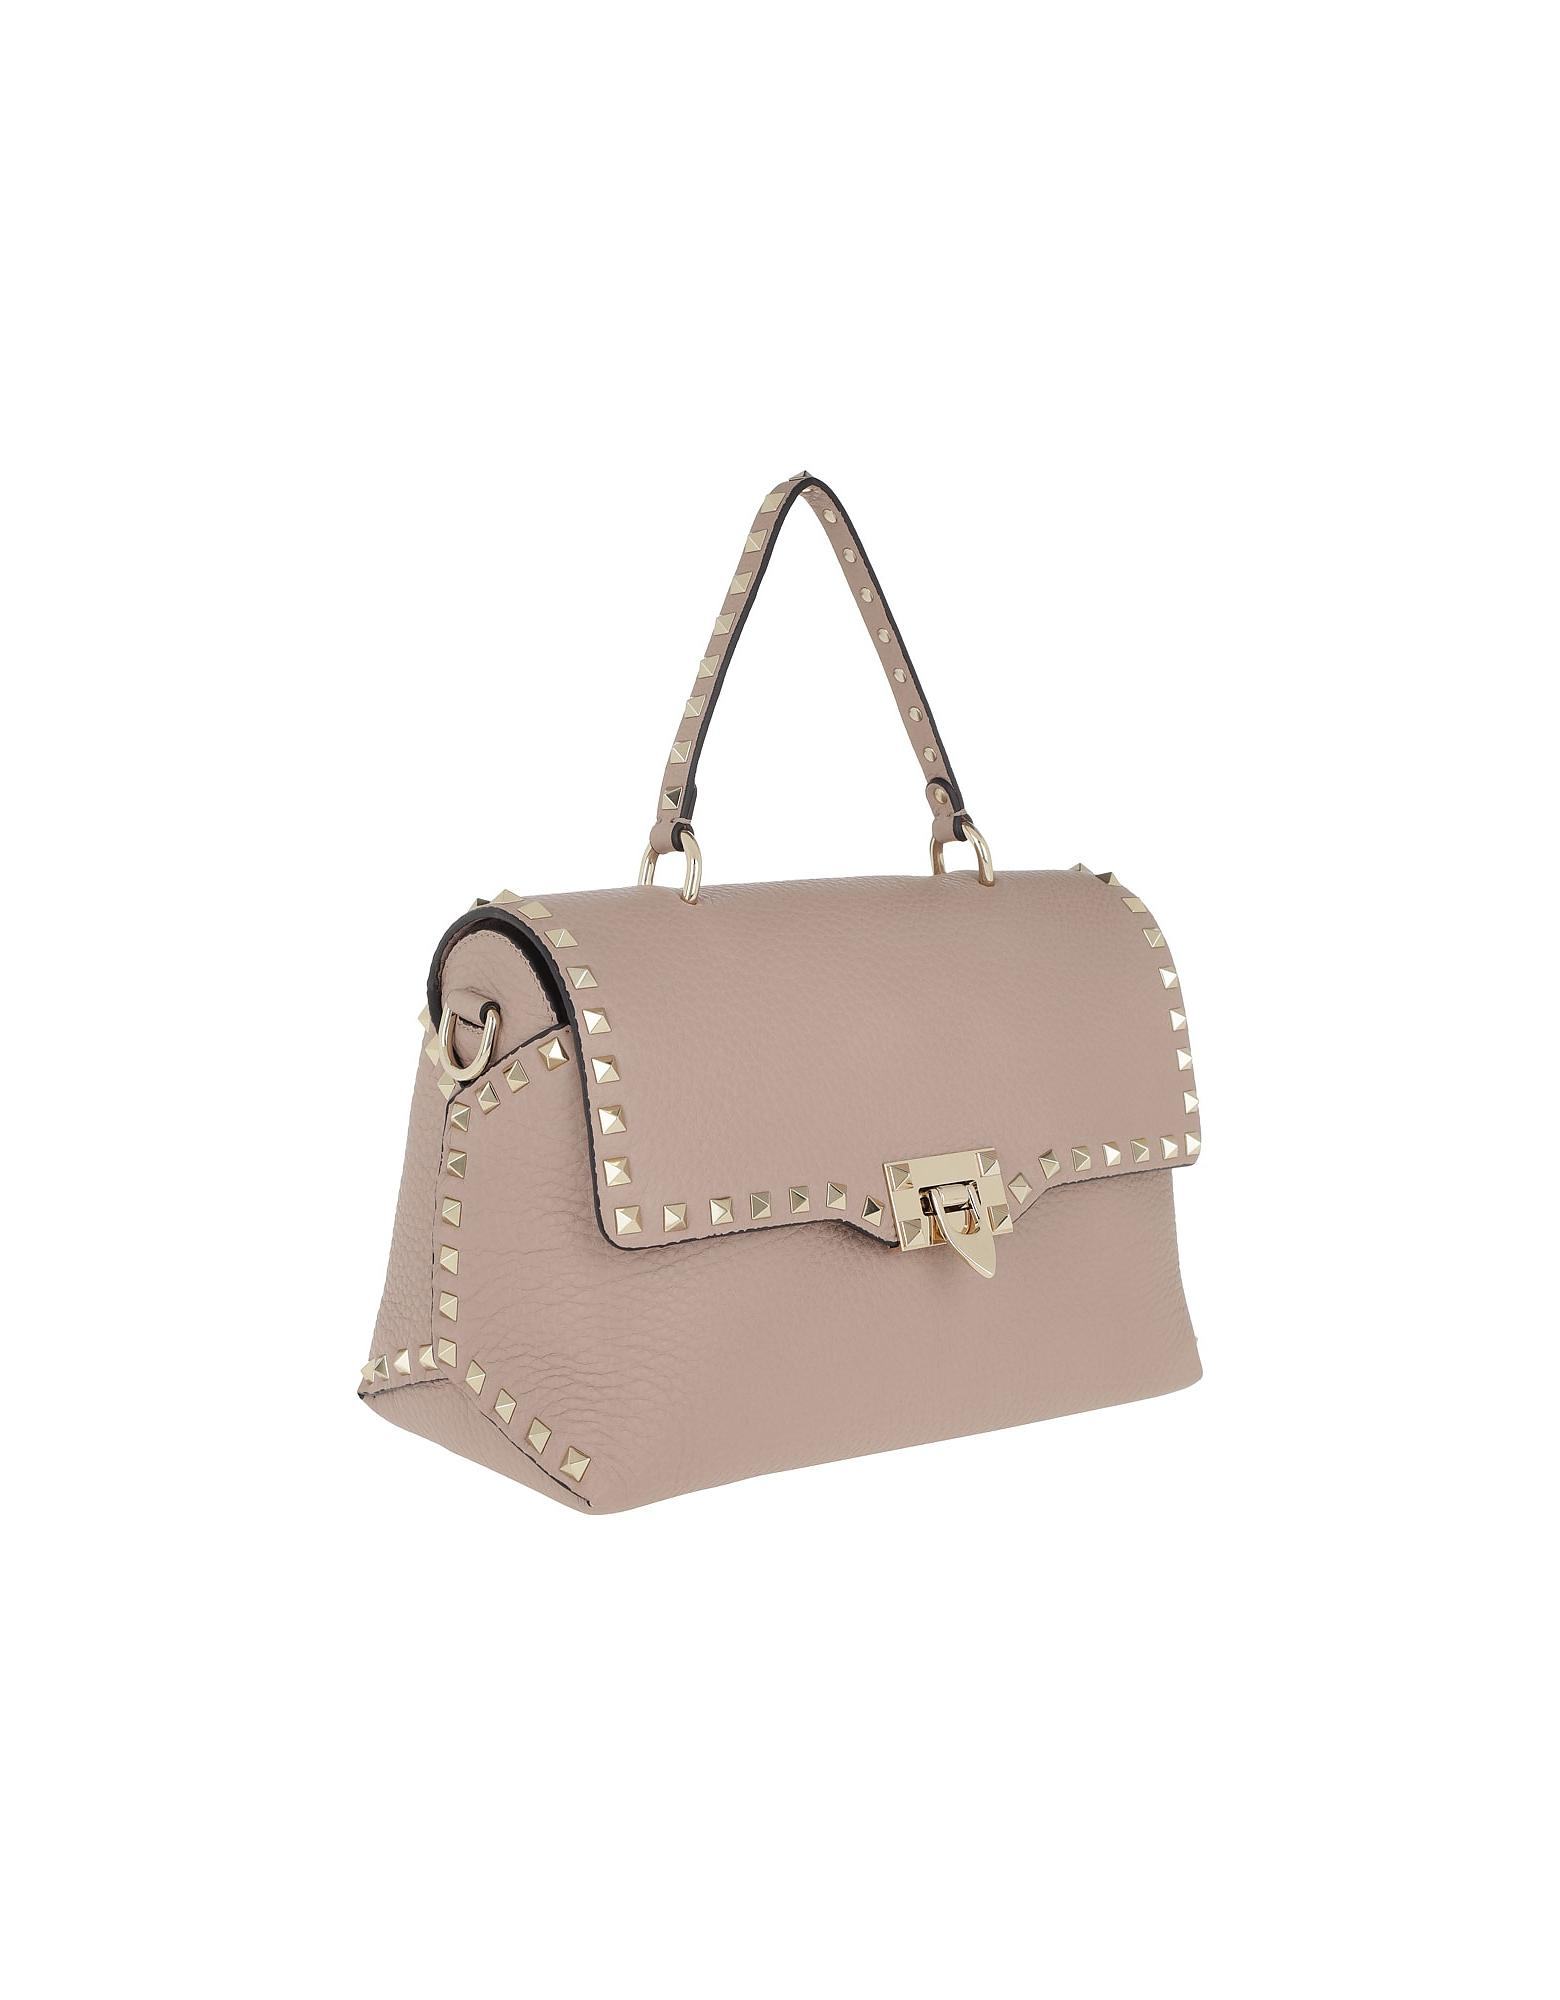 6160ccc8d006 Lyst - Valentino Rockstud Shopper Leather Poudre in Pink